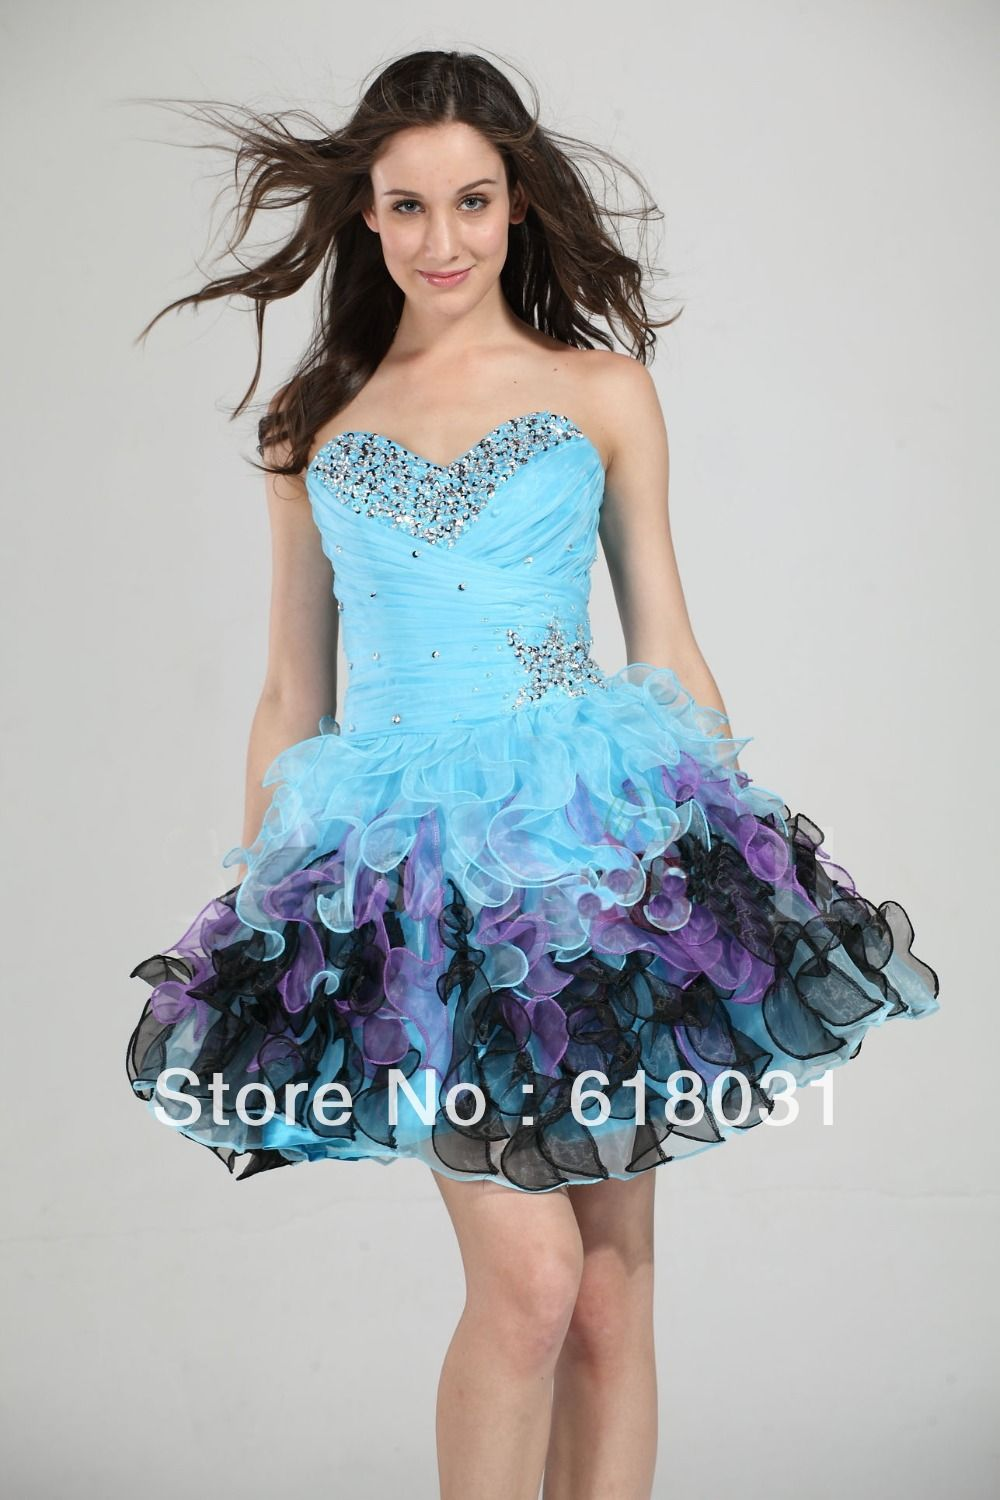 short ruffle prom dresses multi colored - Google Search | dresses ...